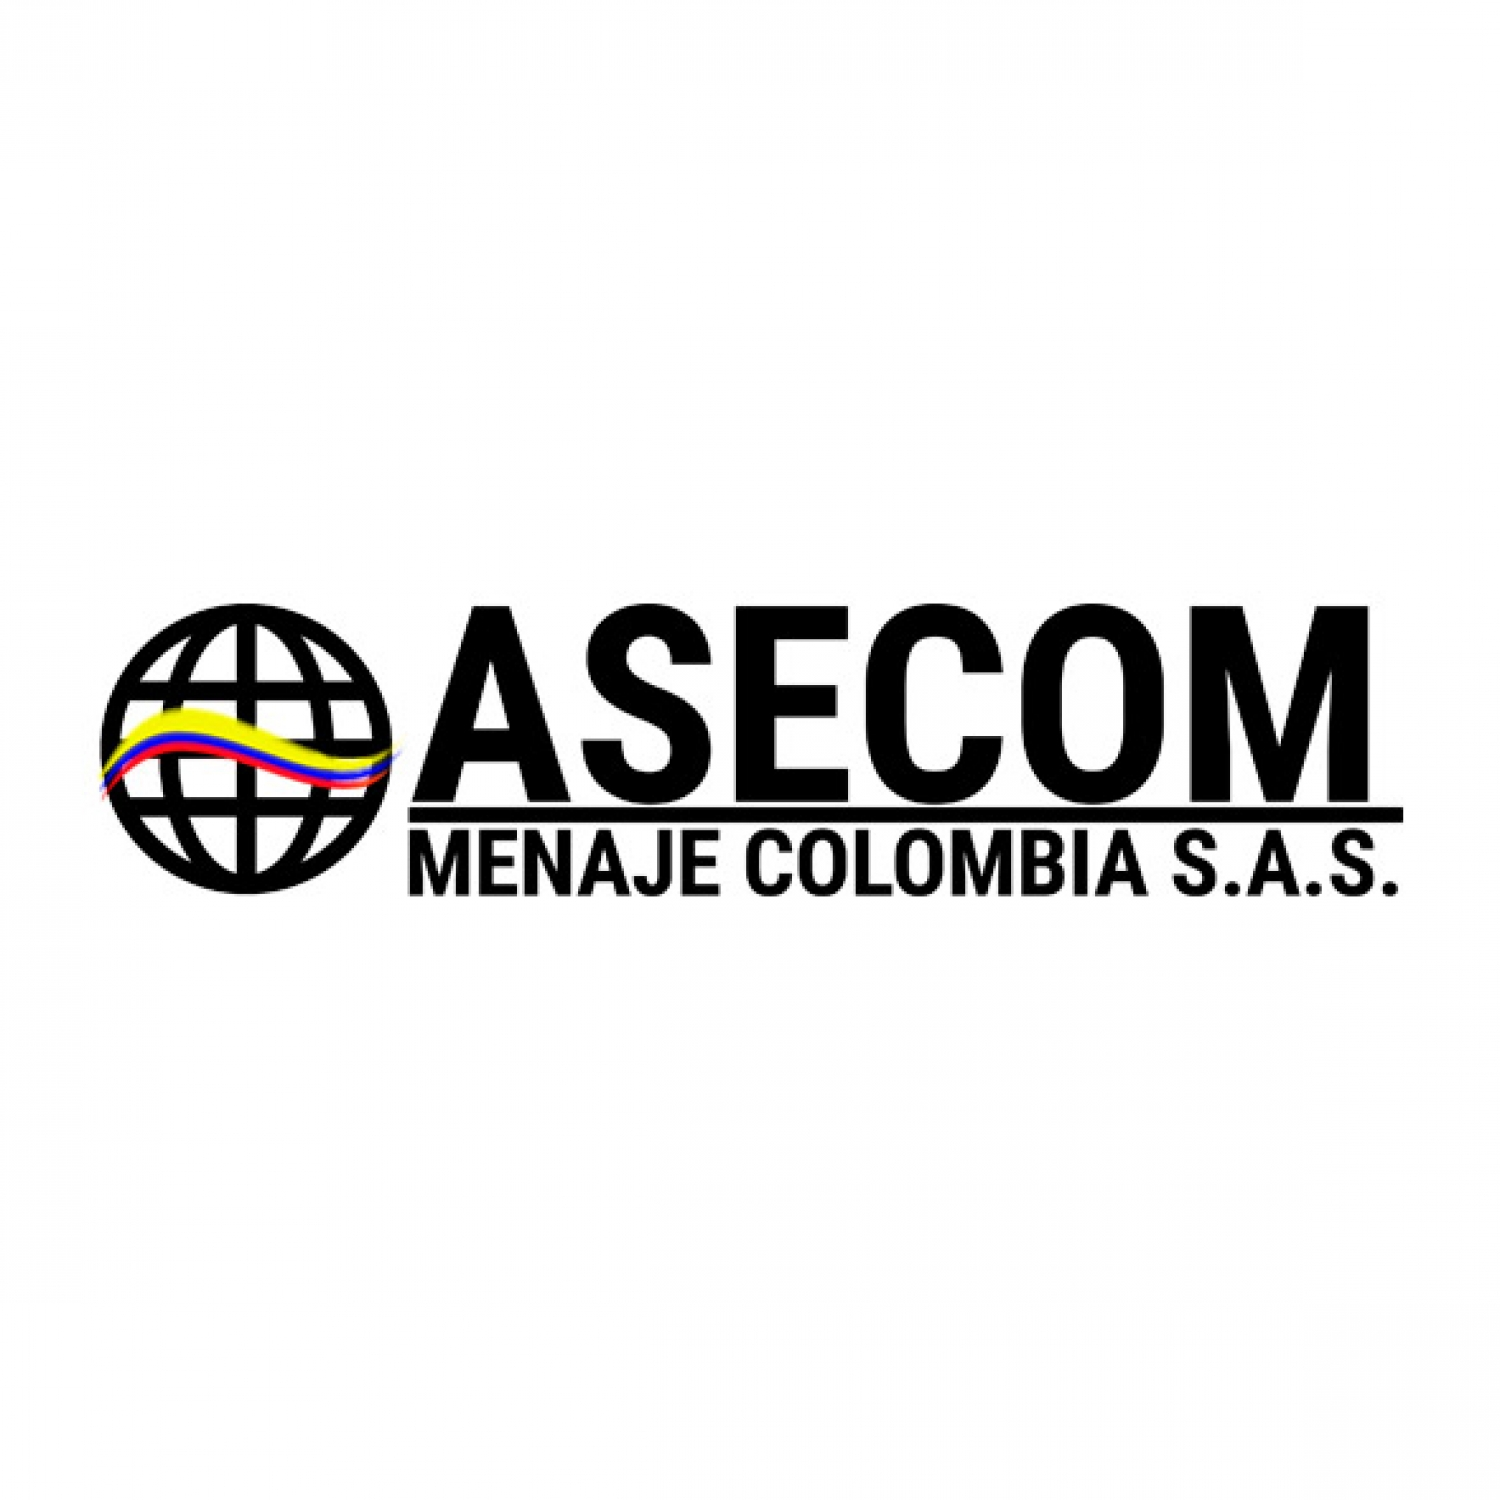 asecom menaje colombia